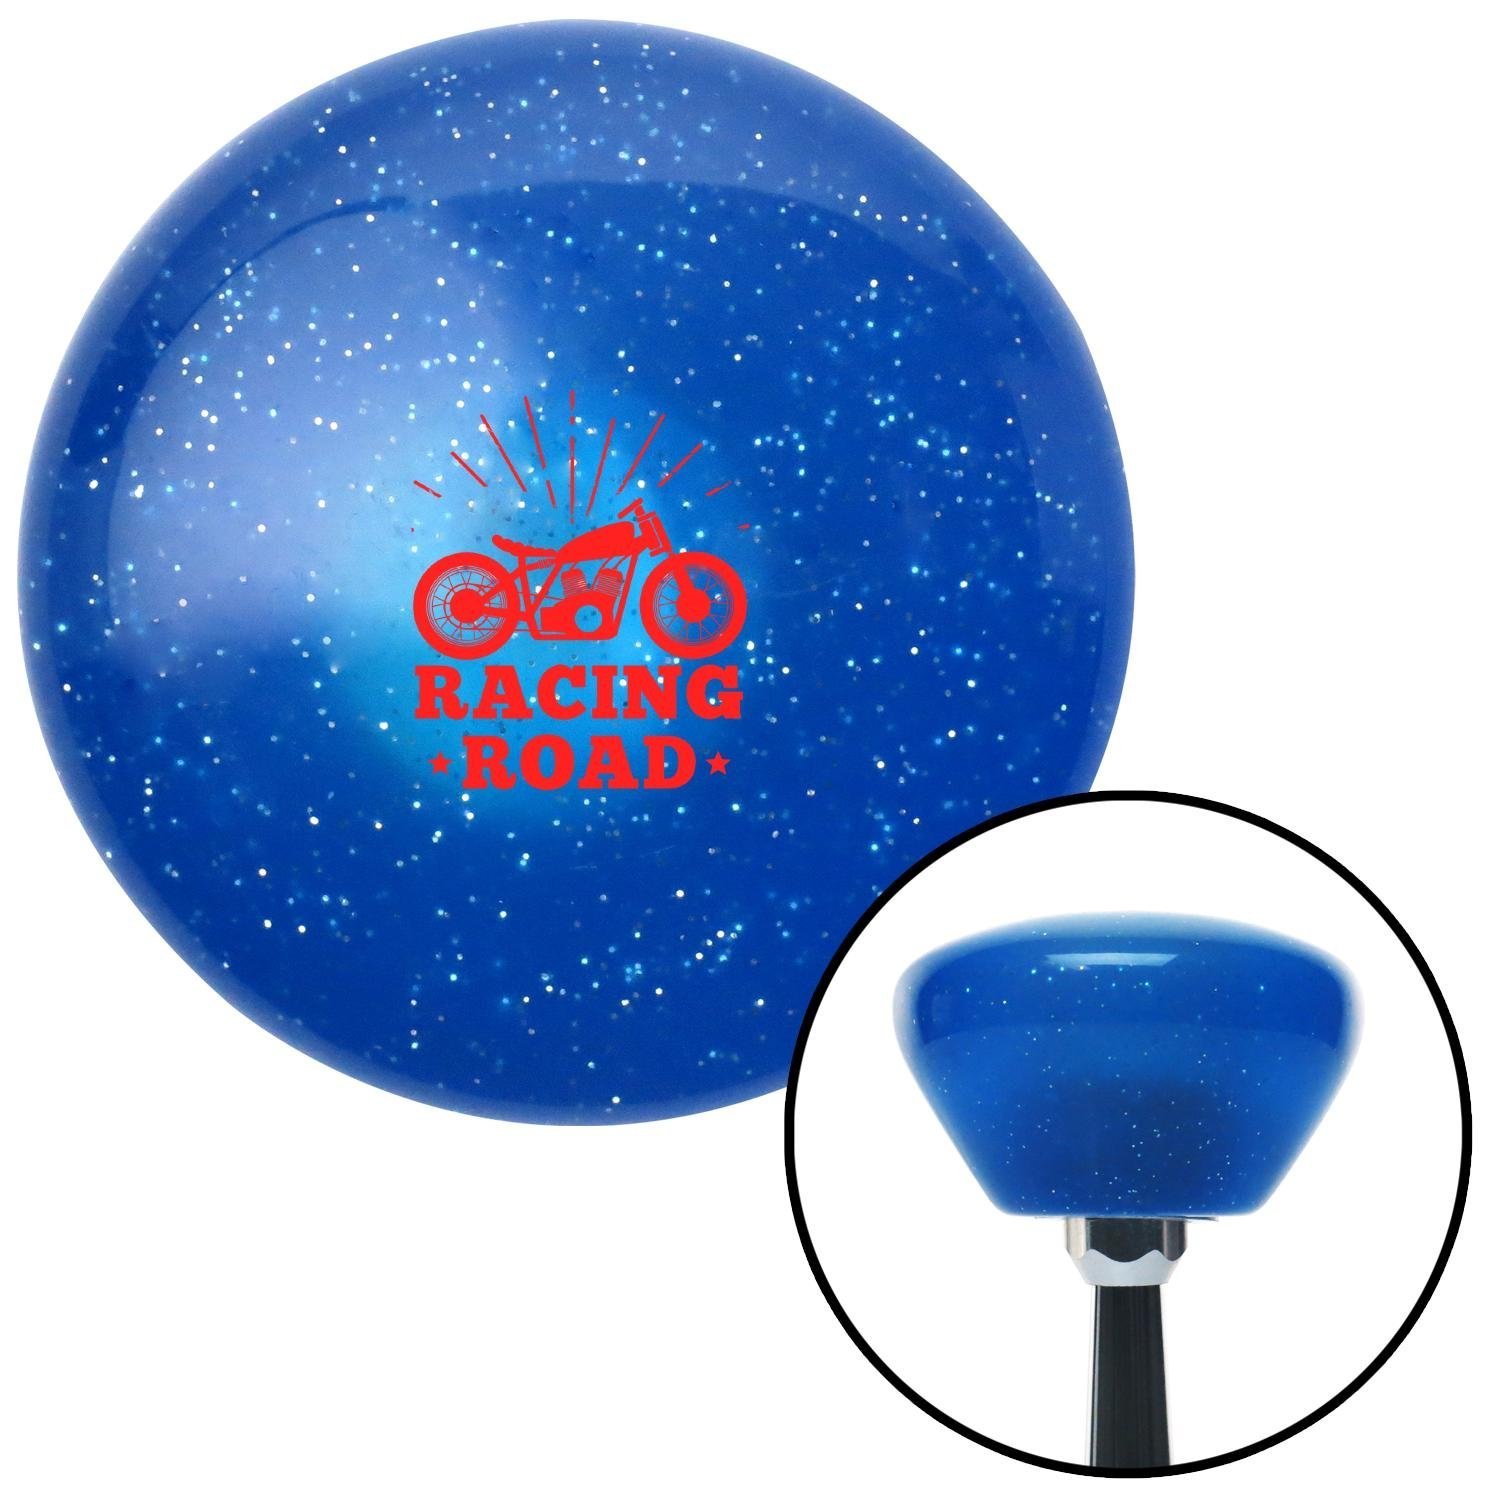 American Shifter 289652 Shift Knob Red Racing Road Blue Retro Metal Flake with M16 x 1.5 Insert